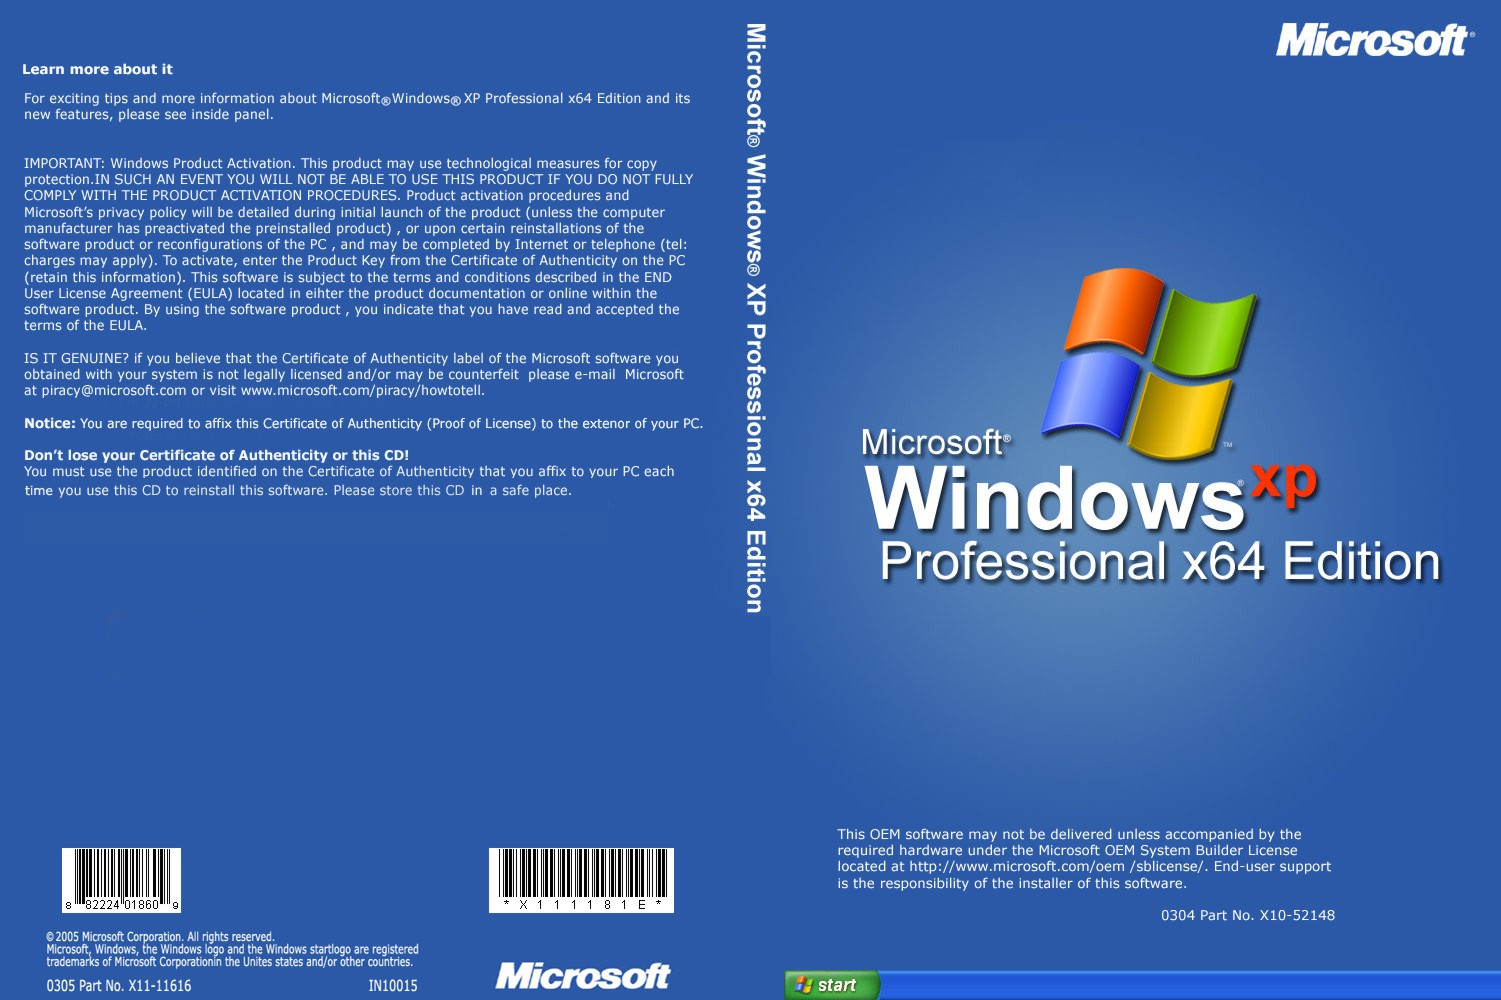 Windows xp professional x64 edition product key : alrelink